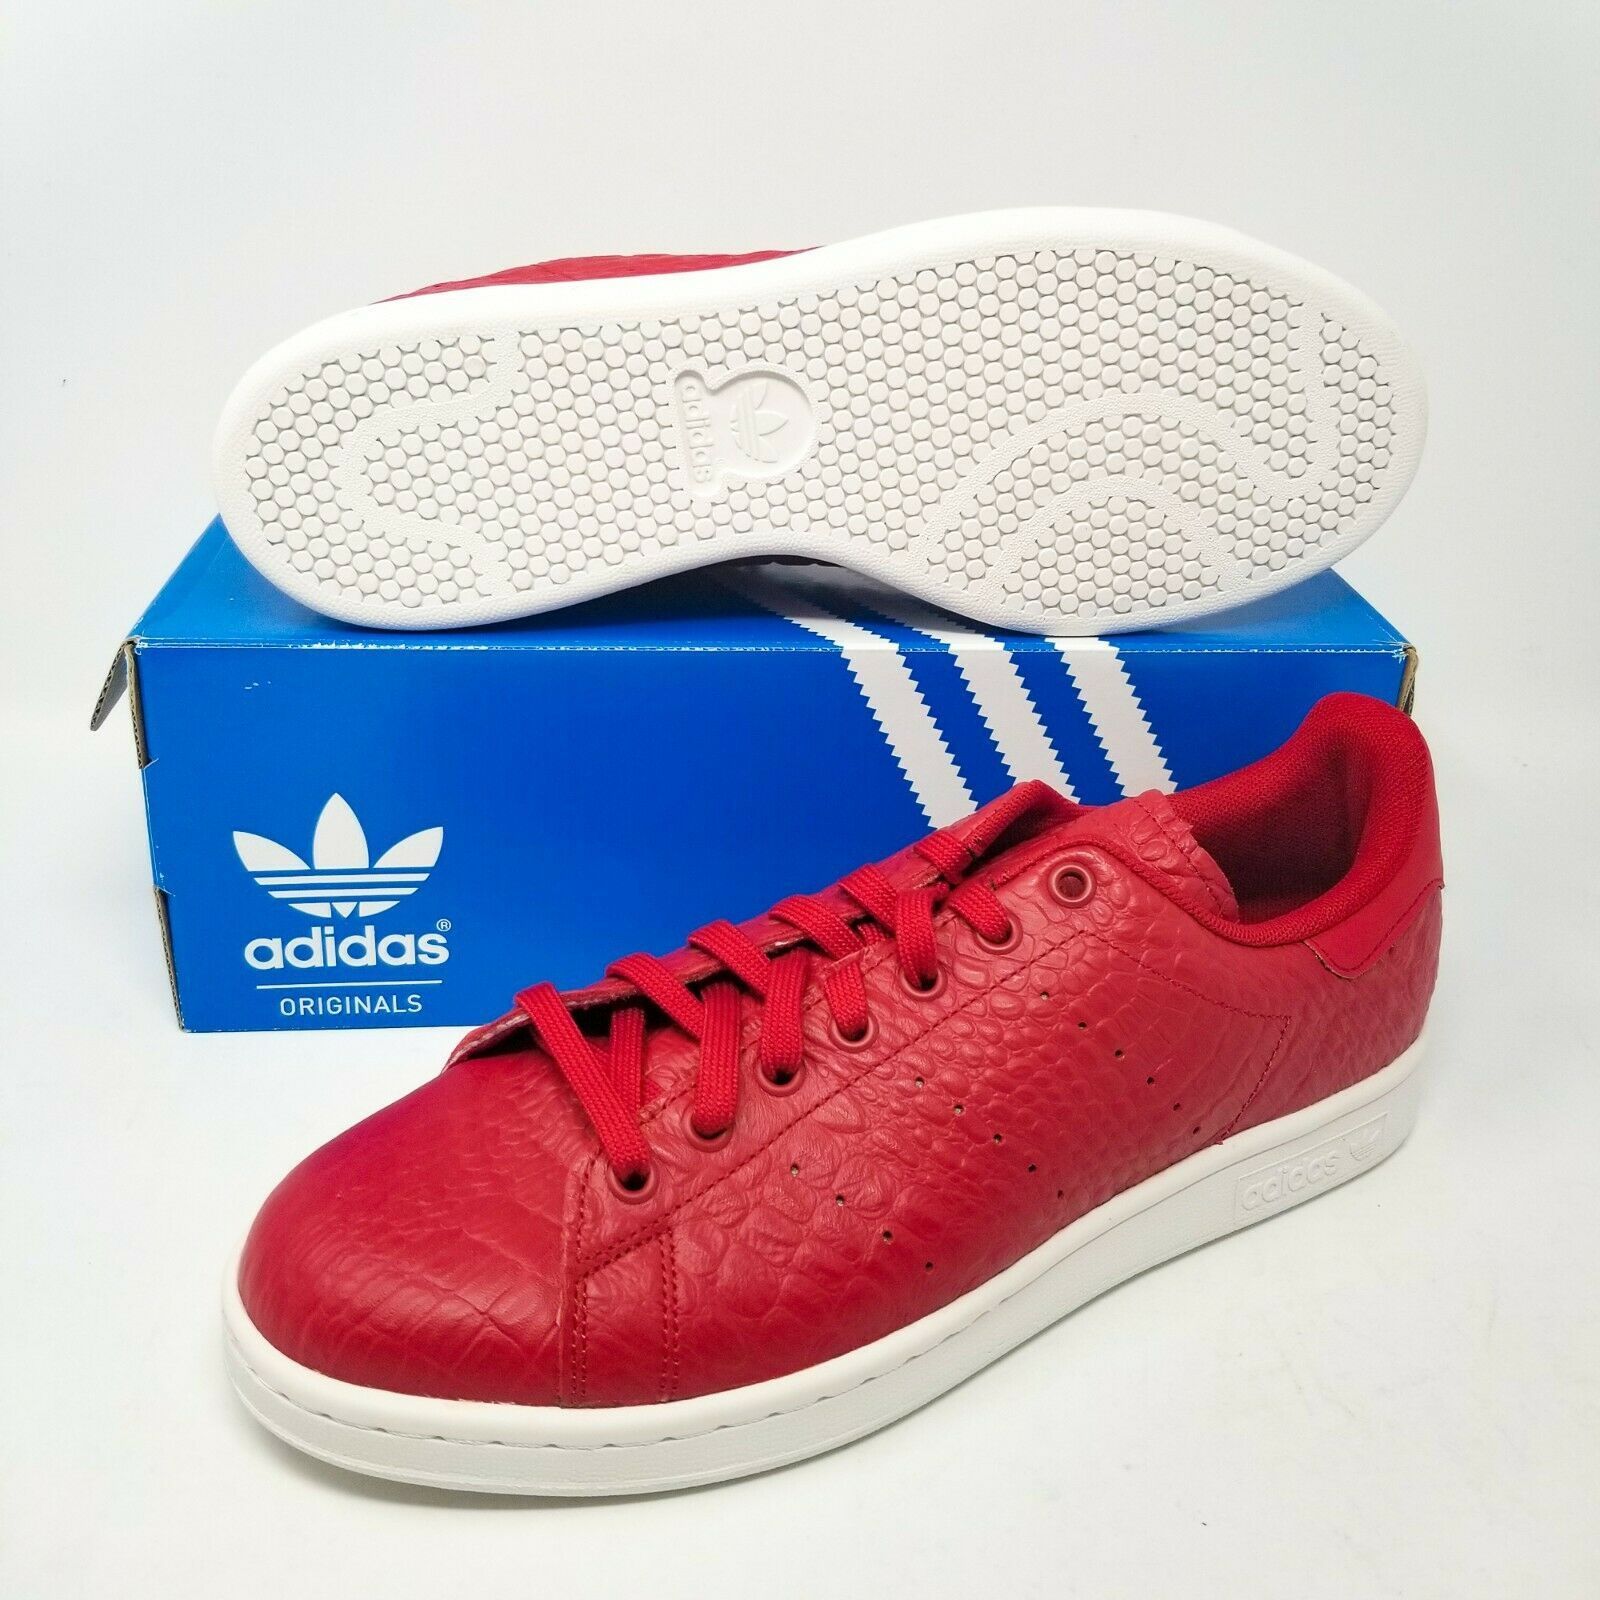 Primary image for adidas Stan Smith Power Red Snakeskin White Tennis Shoes AQ2729  sz 10.5 UK 10